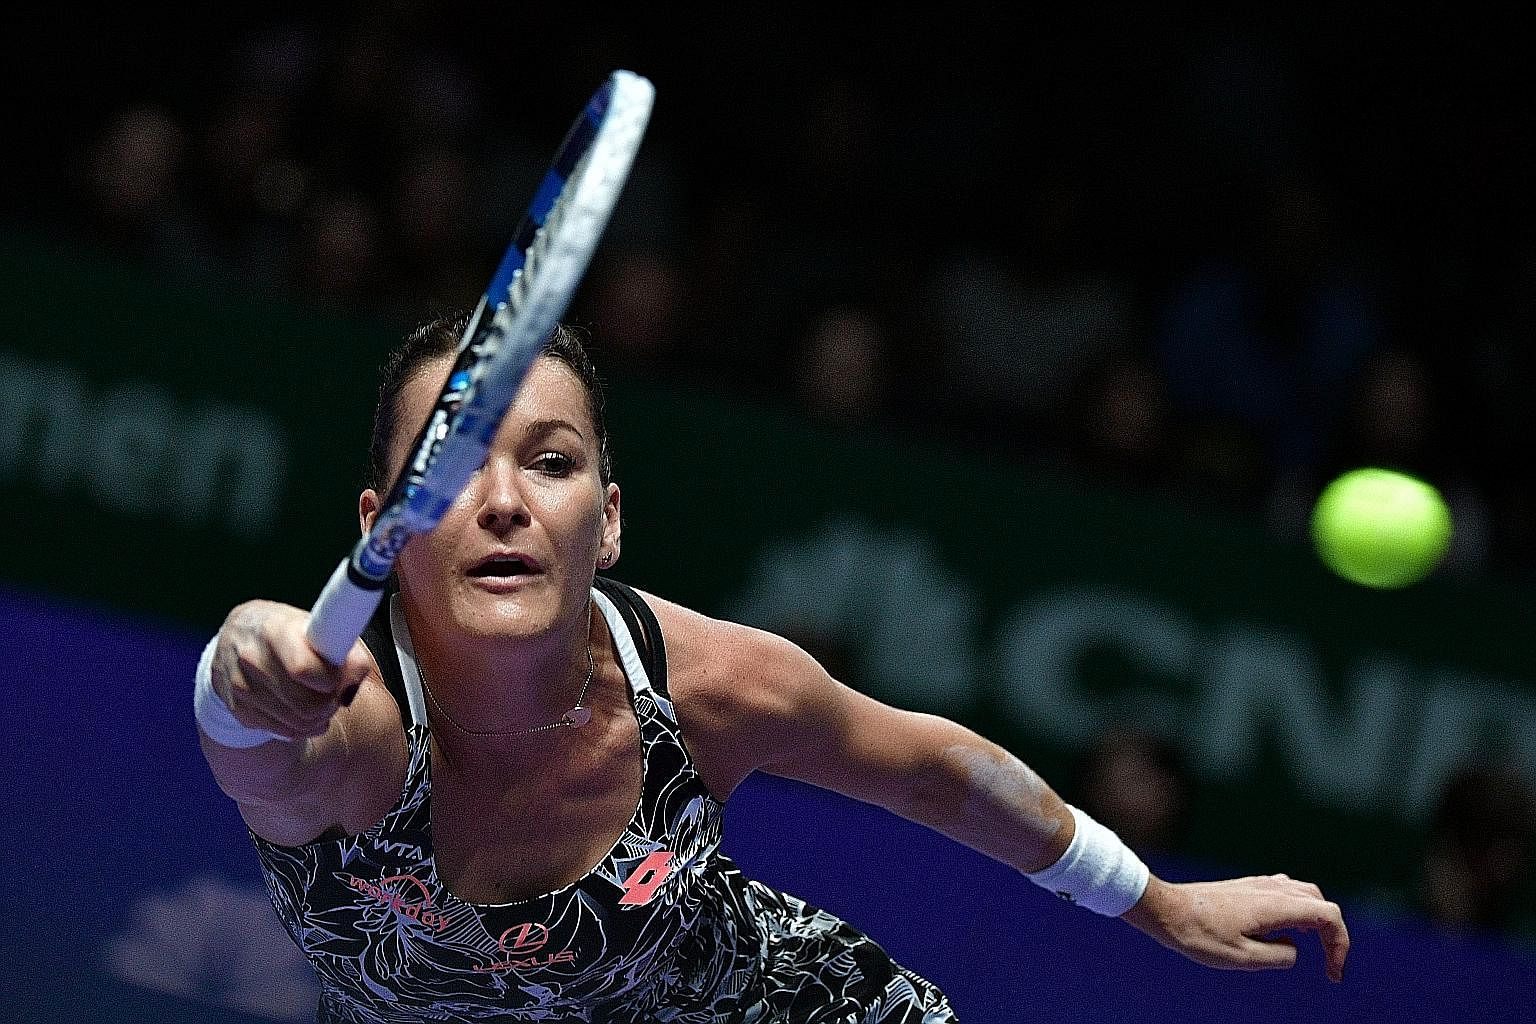 Agnieszka Radwanska of Poland in action against Karolina Pliskova of the Czech Republic yesterday. Radwanska won 7-5, 6-3 to advance to the quarter-finals, where she will meet world No. 1 Angelique Kerber of Germany.